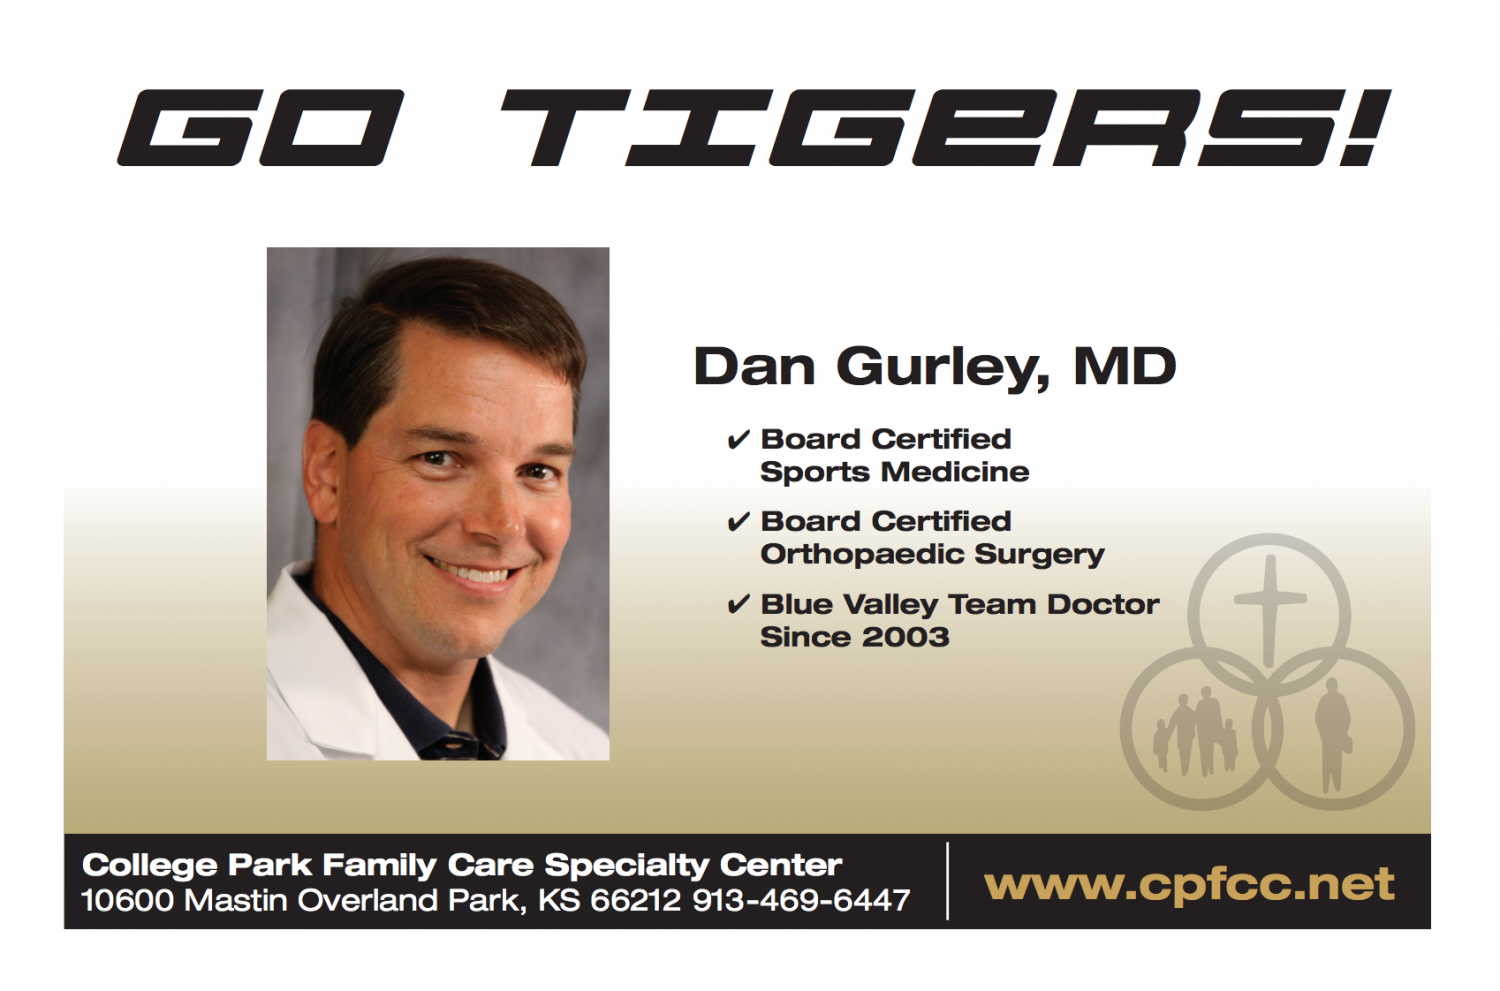 http%3A%2F%2Fmymidwestphysician.com%2Fphysicians%2Fprofile%2FDaniel-J-Gurley-MD